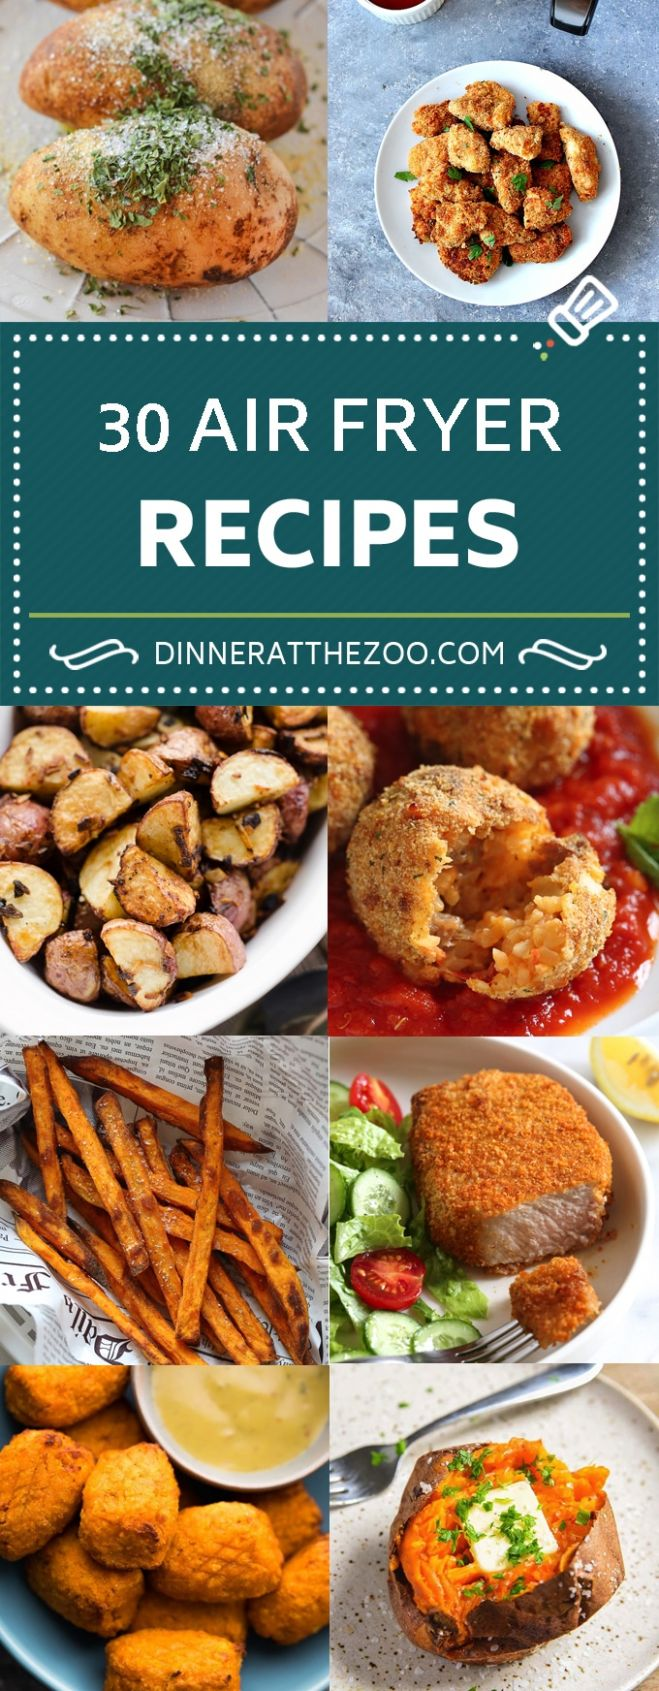 9 Air Fryer Recipes - Dinner at the Zoo - Recipes Dinner Air Fryer